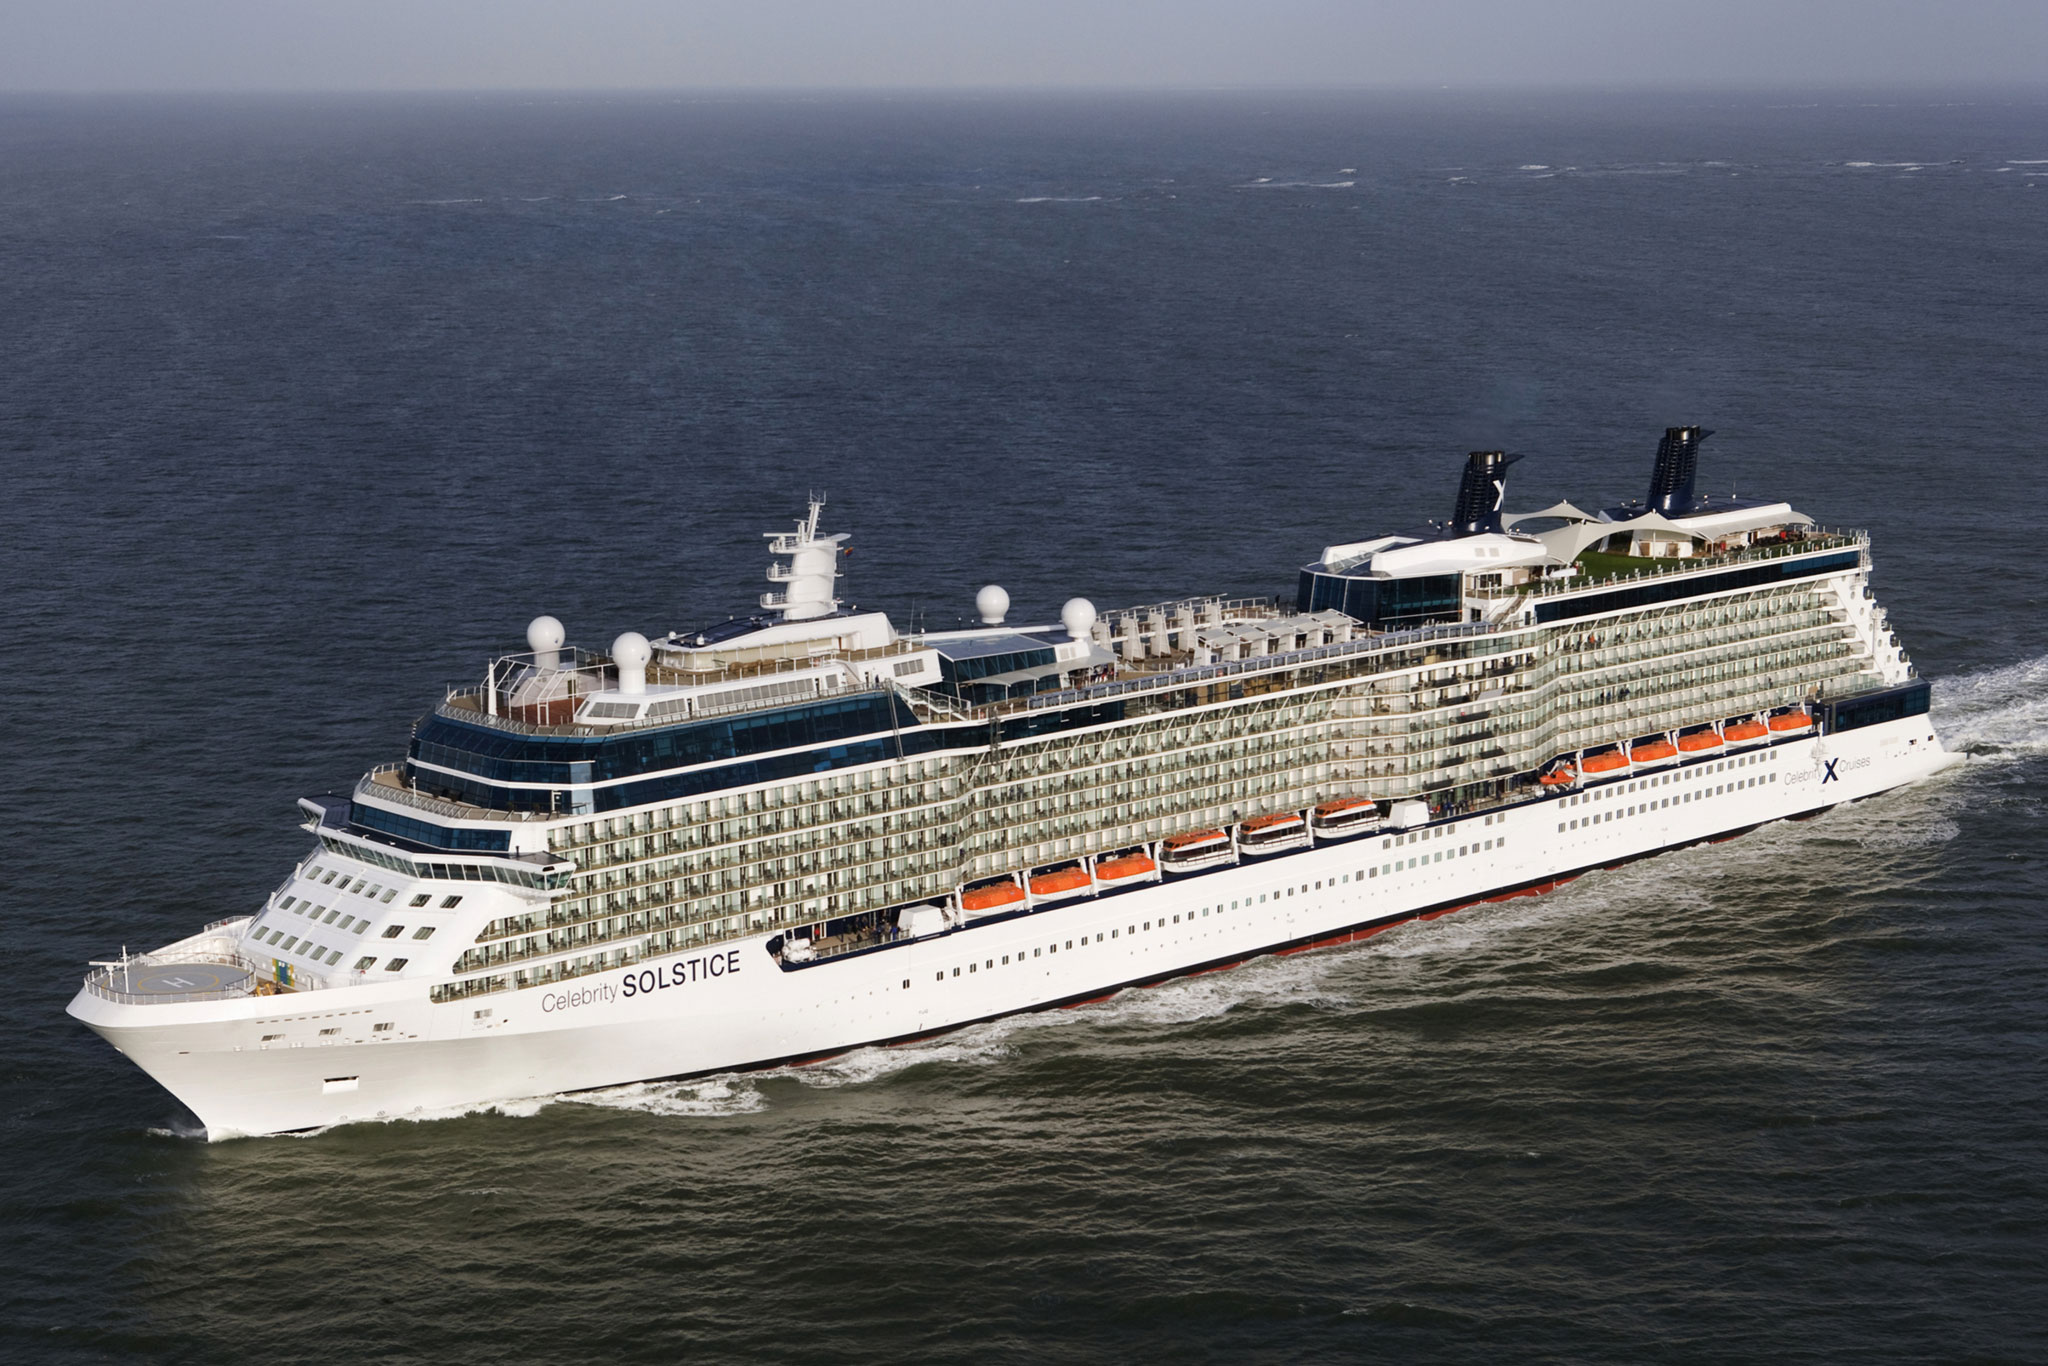 Celebrity cruises image of celebrity solstice in the ems